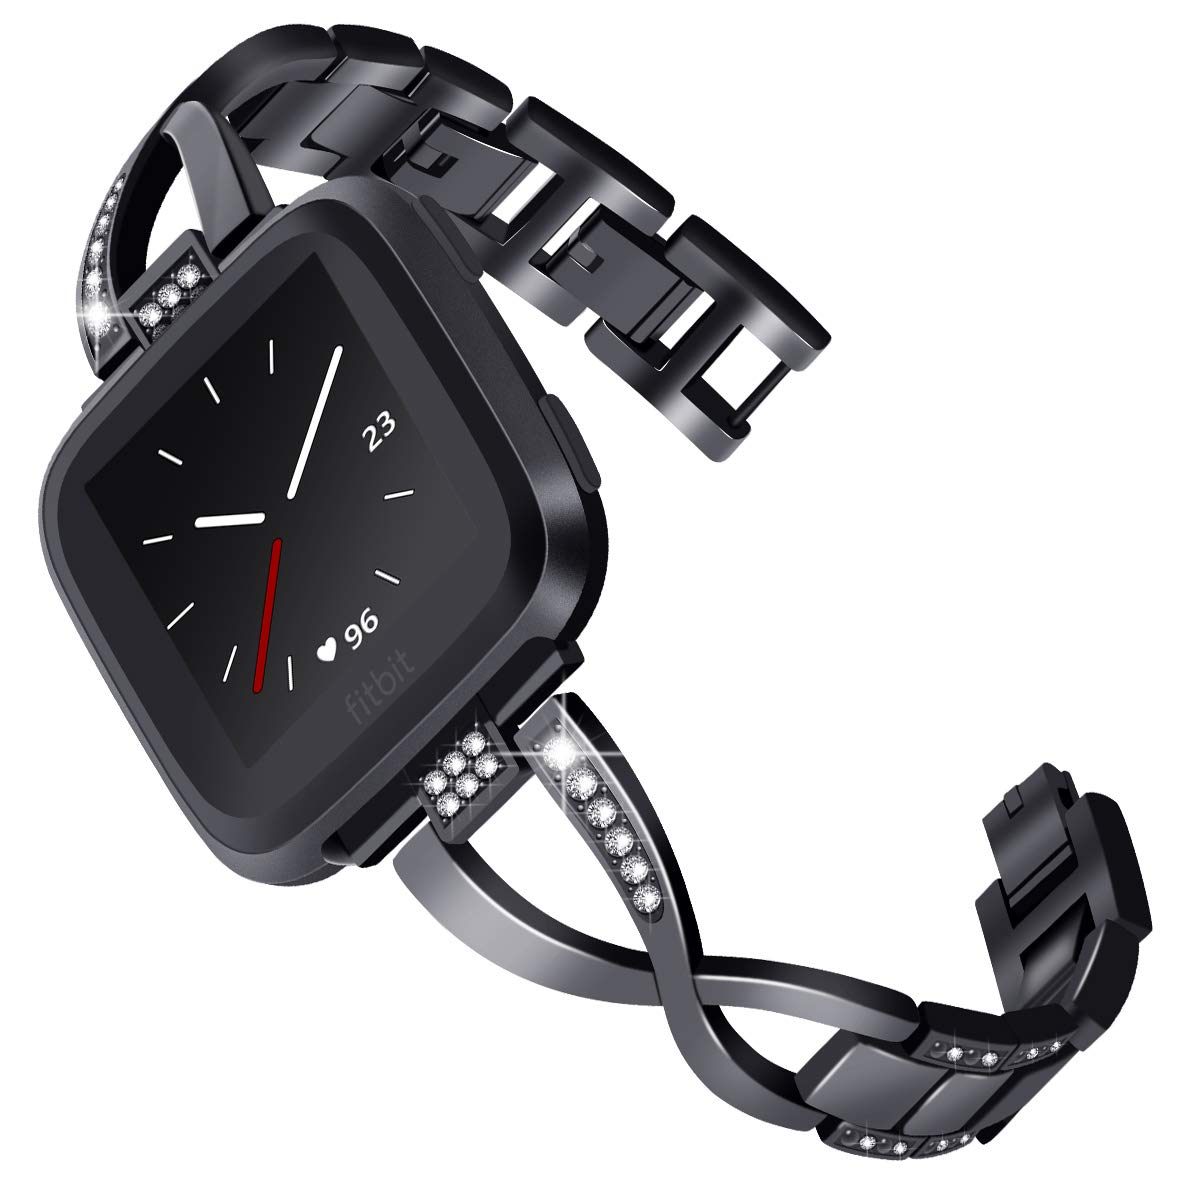 KADES for Fitbit Versa Band for Women, Jewelry Bracelet Metal Replacement Band Compatible for Fitbit Versa Smart Watch (Black)